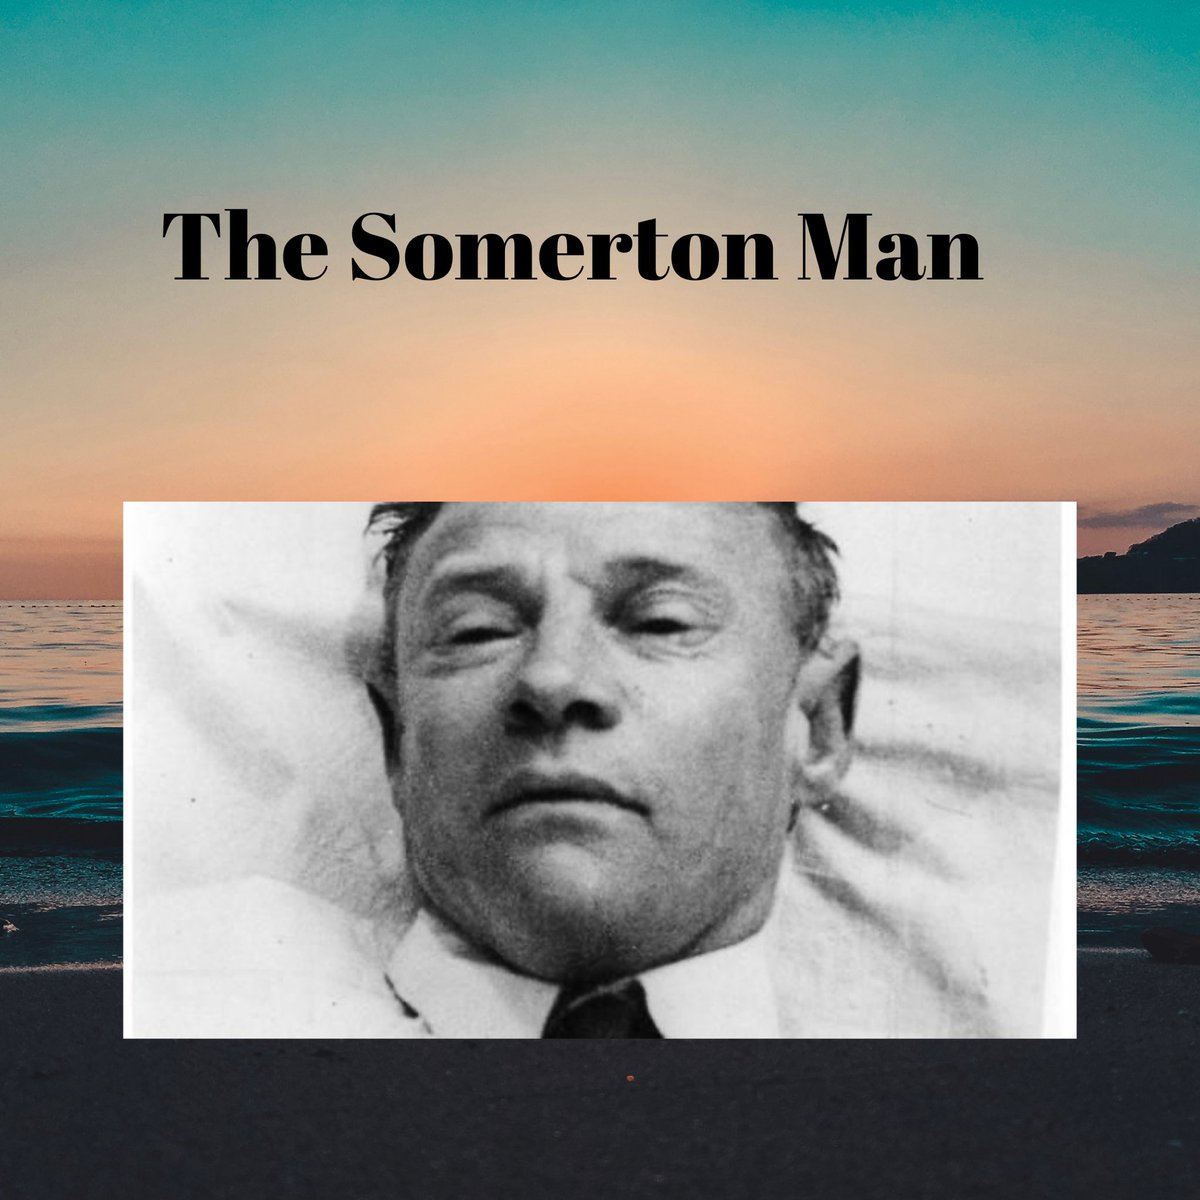 Was the Somerton man a spy or a guy who was just in the wrong place at the wrong time? Listen to our latest episode to learn more.  https://t.co/4VQ6QnAZLE  #podcast #podcastlife #weirdhistory #drunkhistory #drunkinthelibrary #newpodcast #podcastsofinstagram #somertonman https://t.co/1pSIi2NXxo